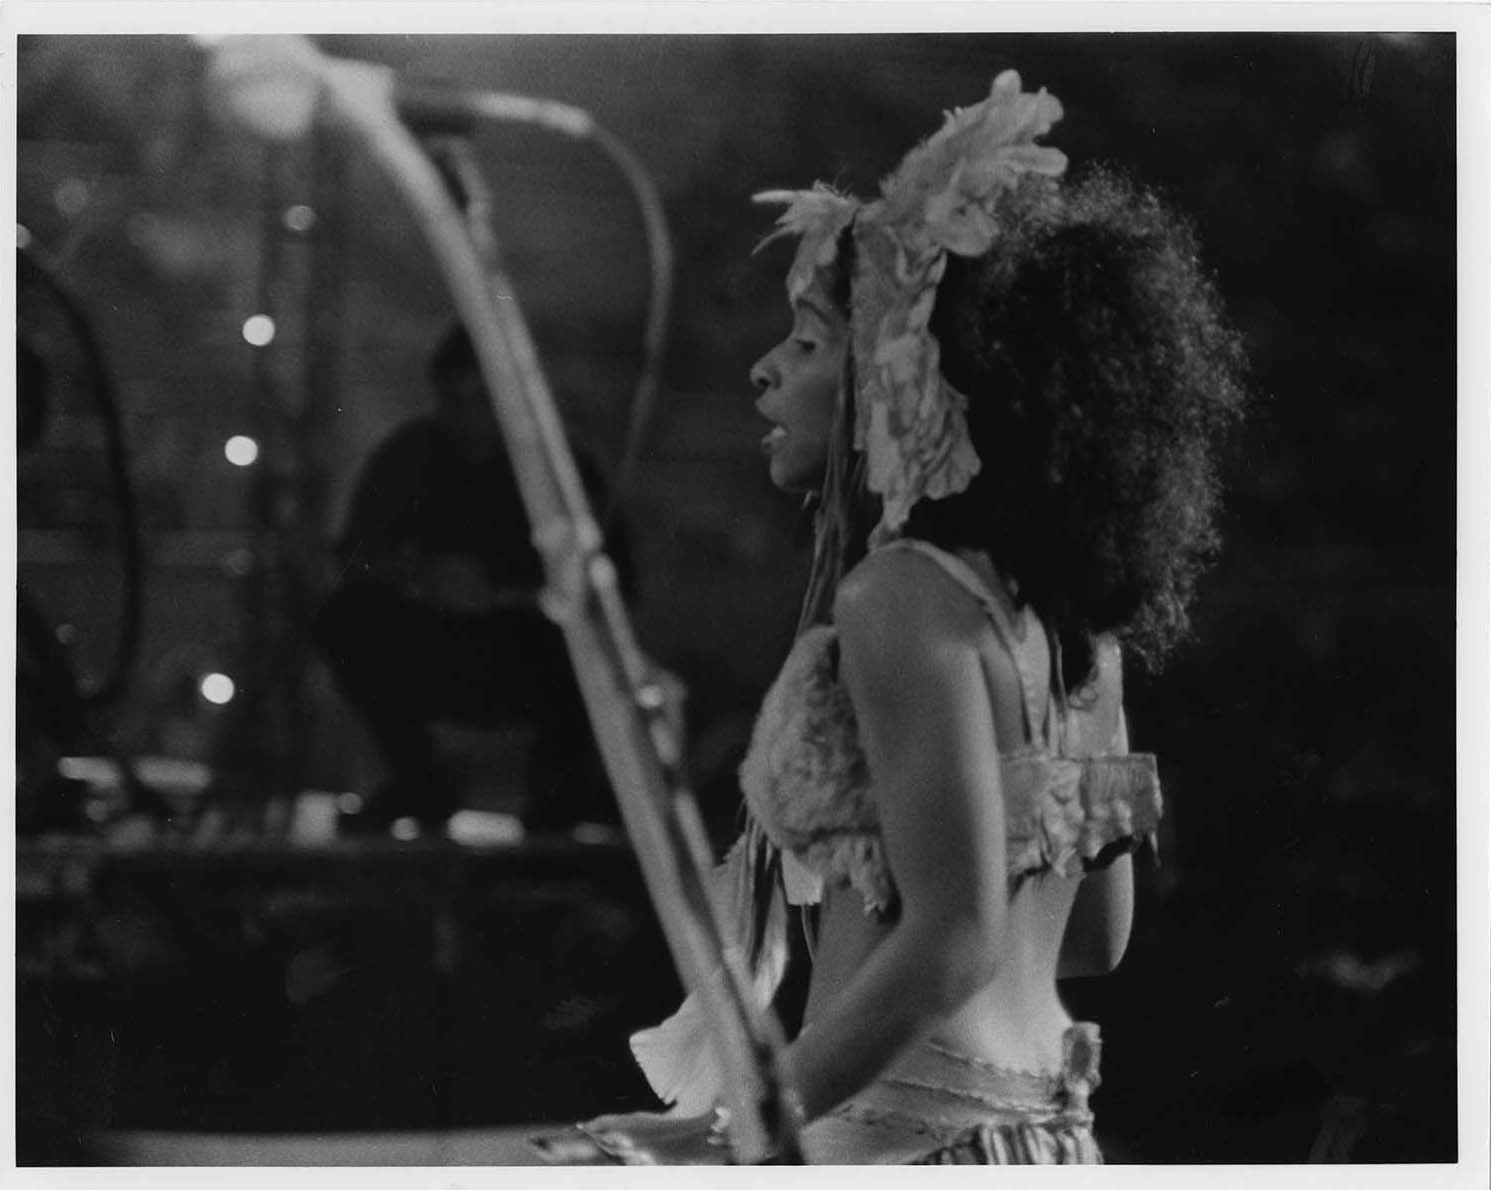 Live concert photo of Chaka Khan